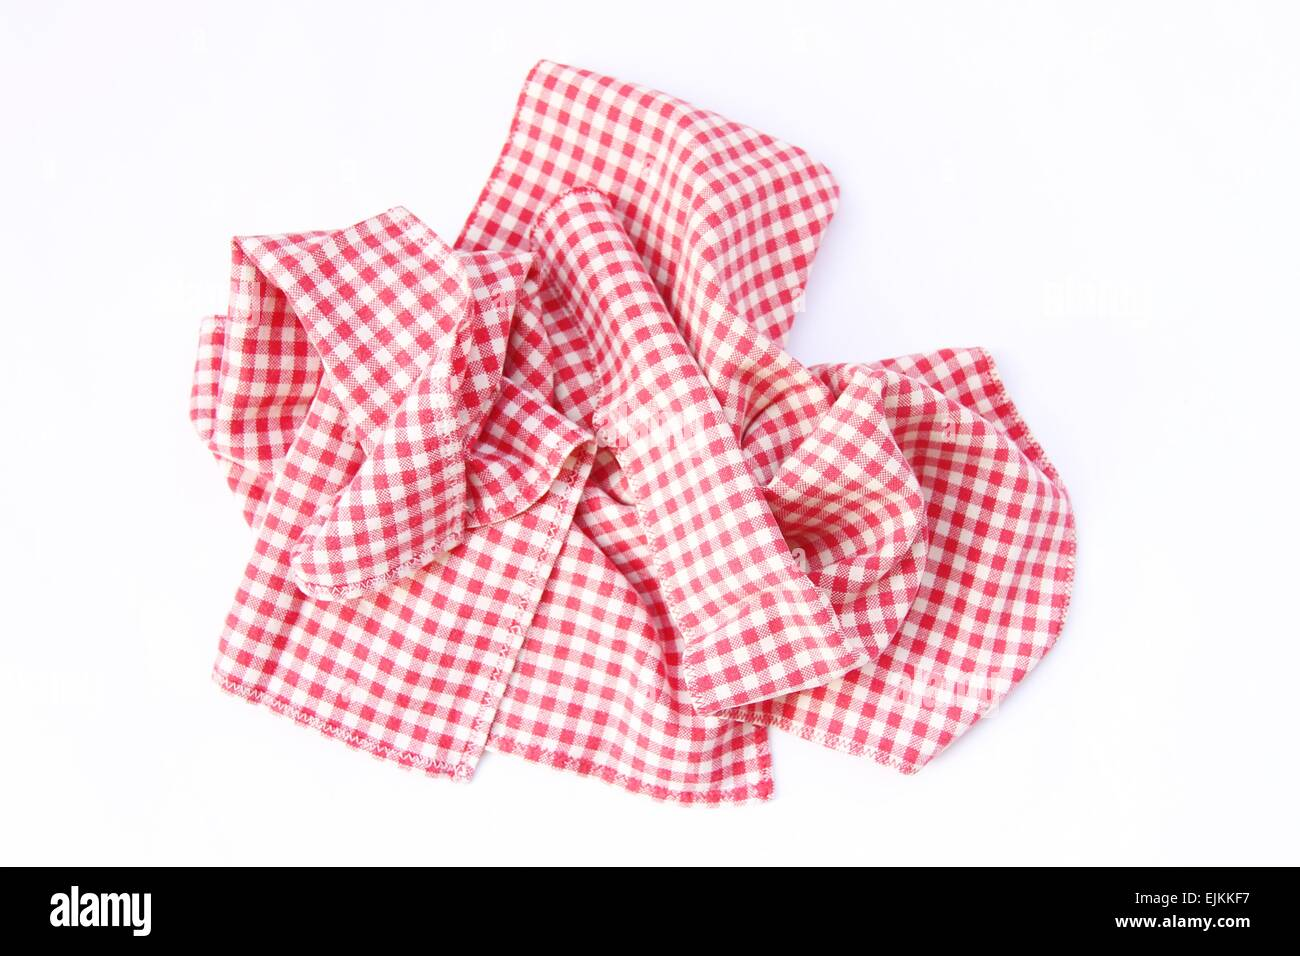 Dishcloths cotton, ruffled, in good condition 'new'. Red checkered pattern. - Stock Image